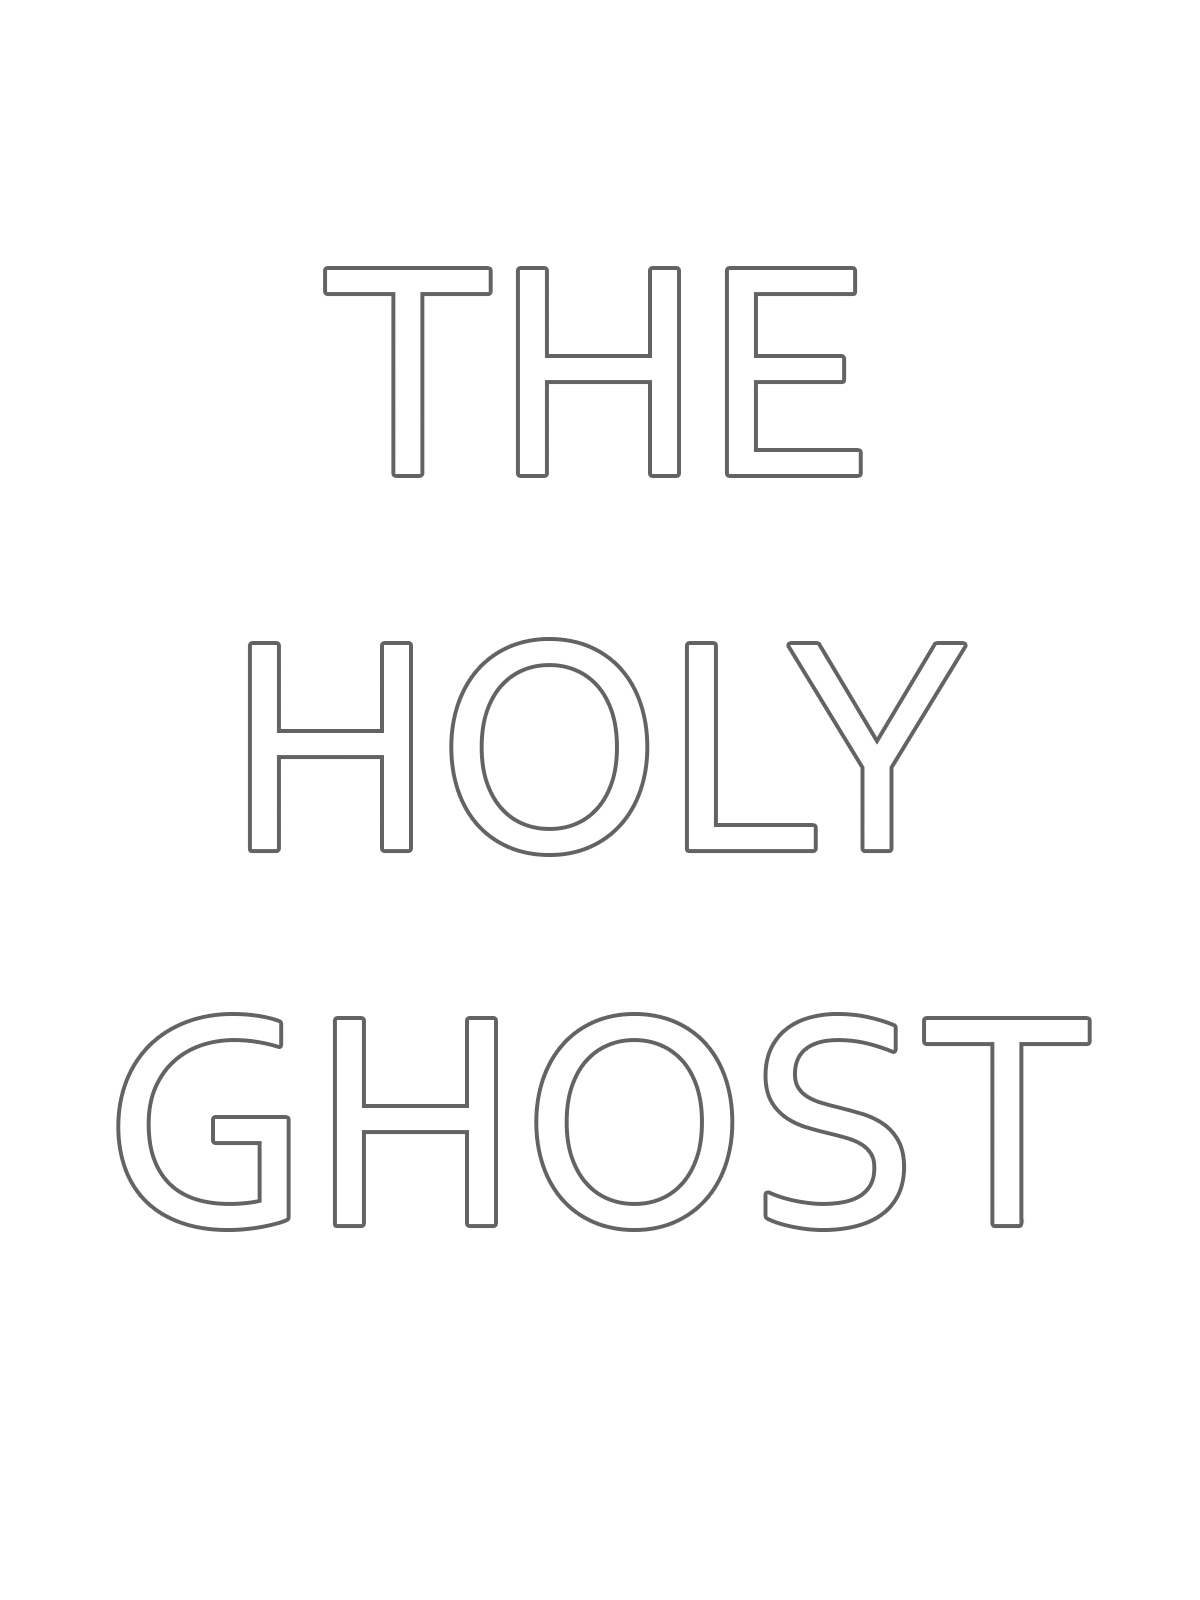 An illustration of the Holy Ghost.